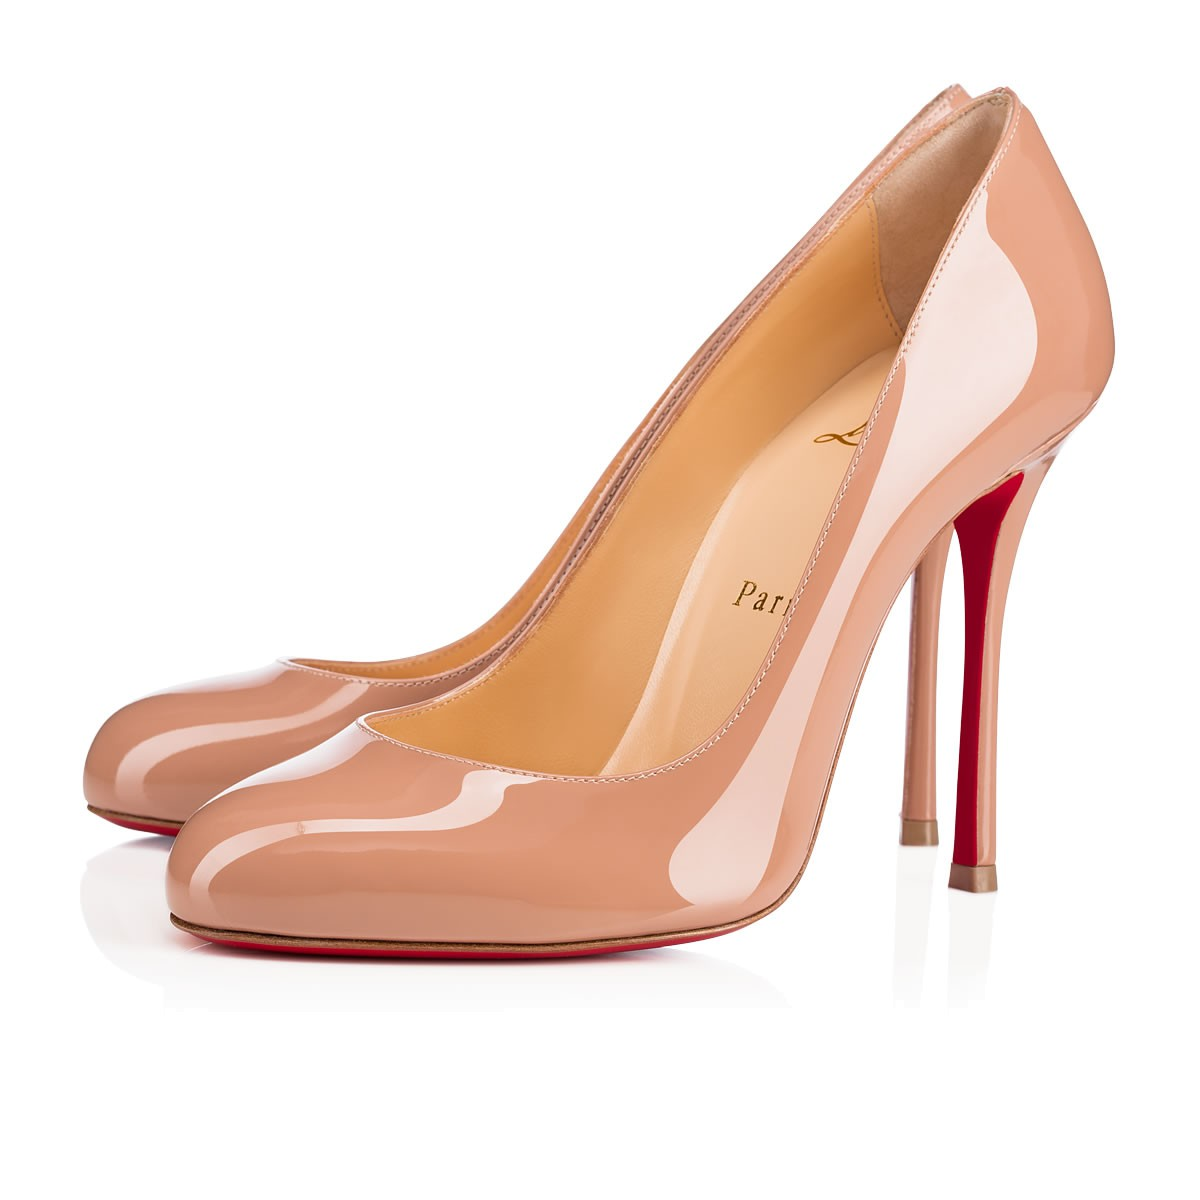 b72a48f03d Christian Louboutin Fifille Patent Red Sole Pump In Nude | ModeSens